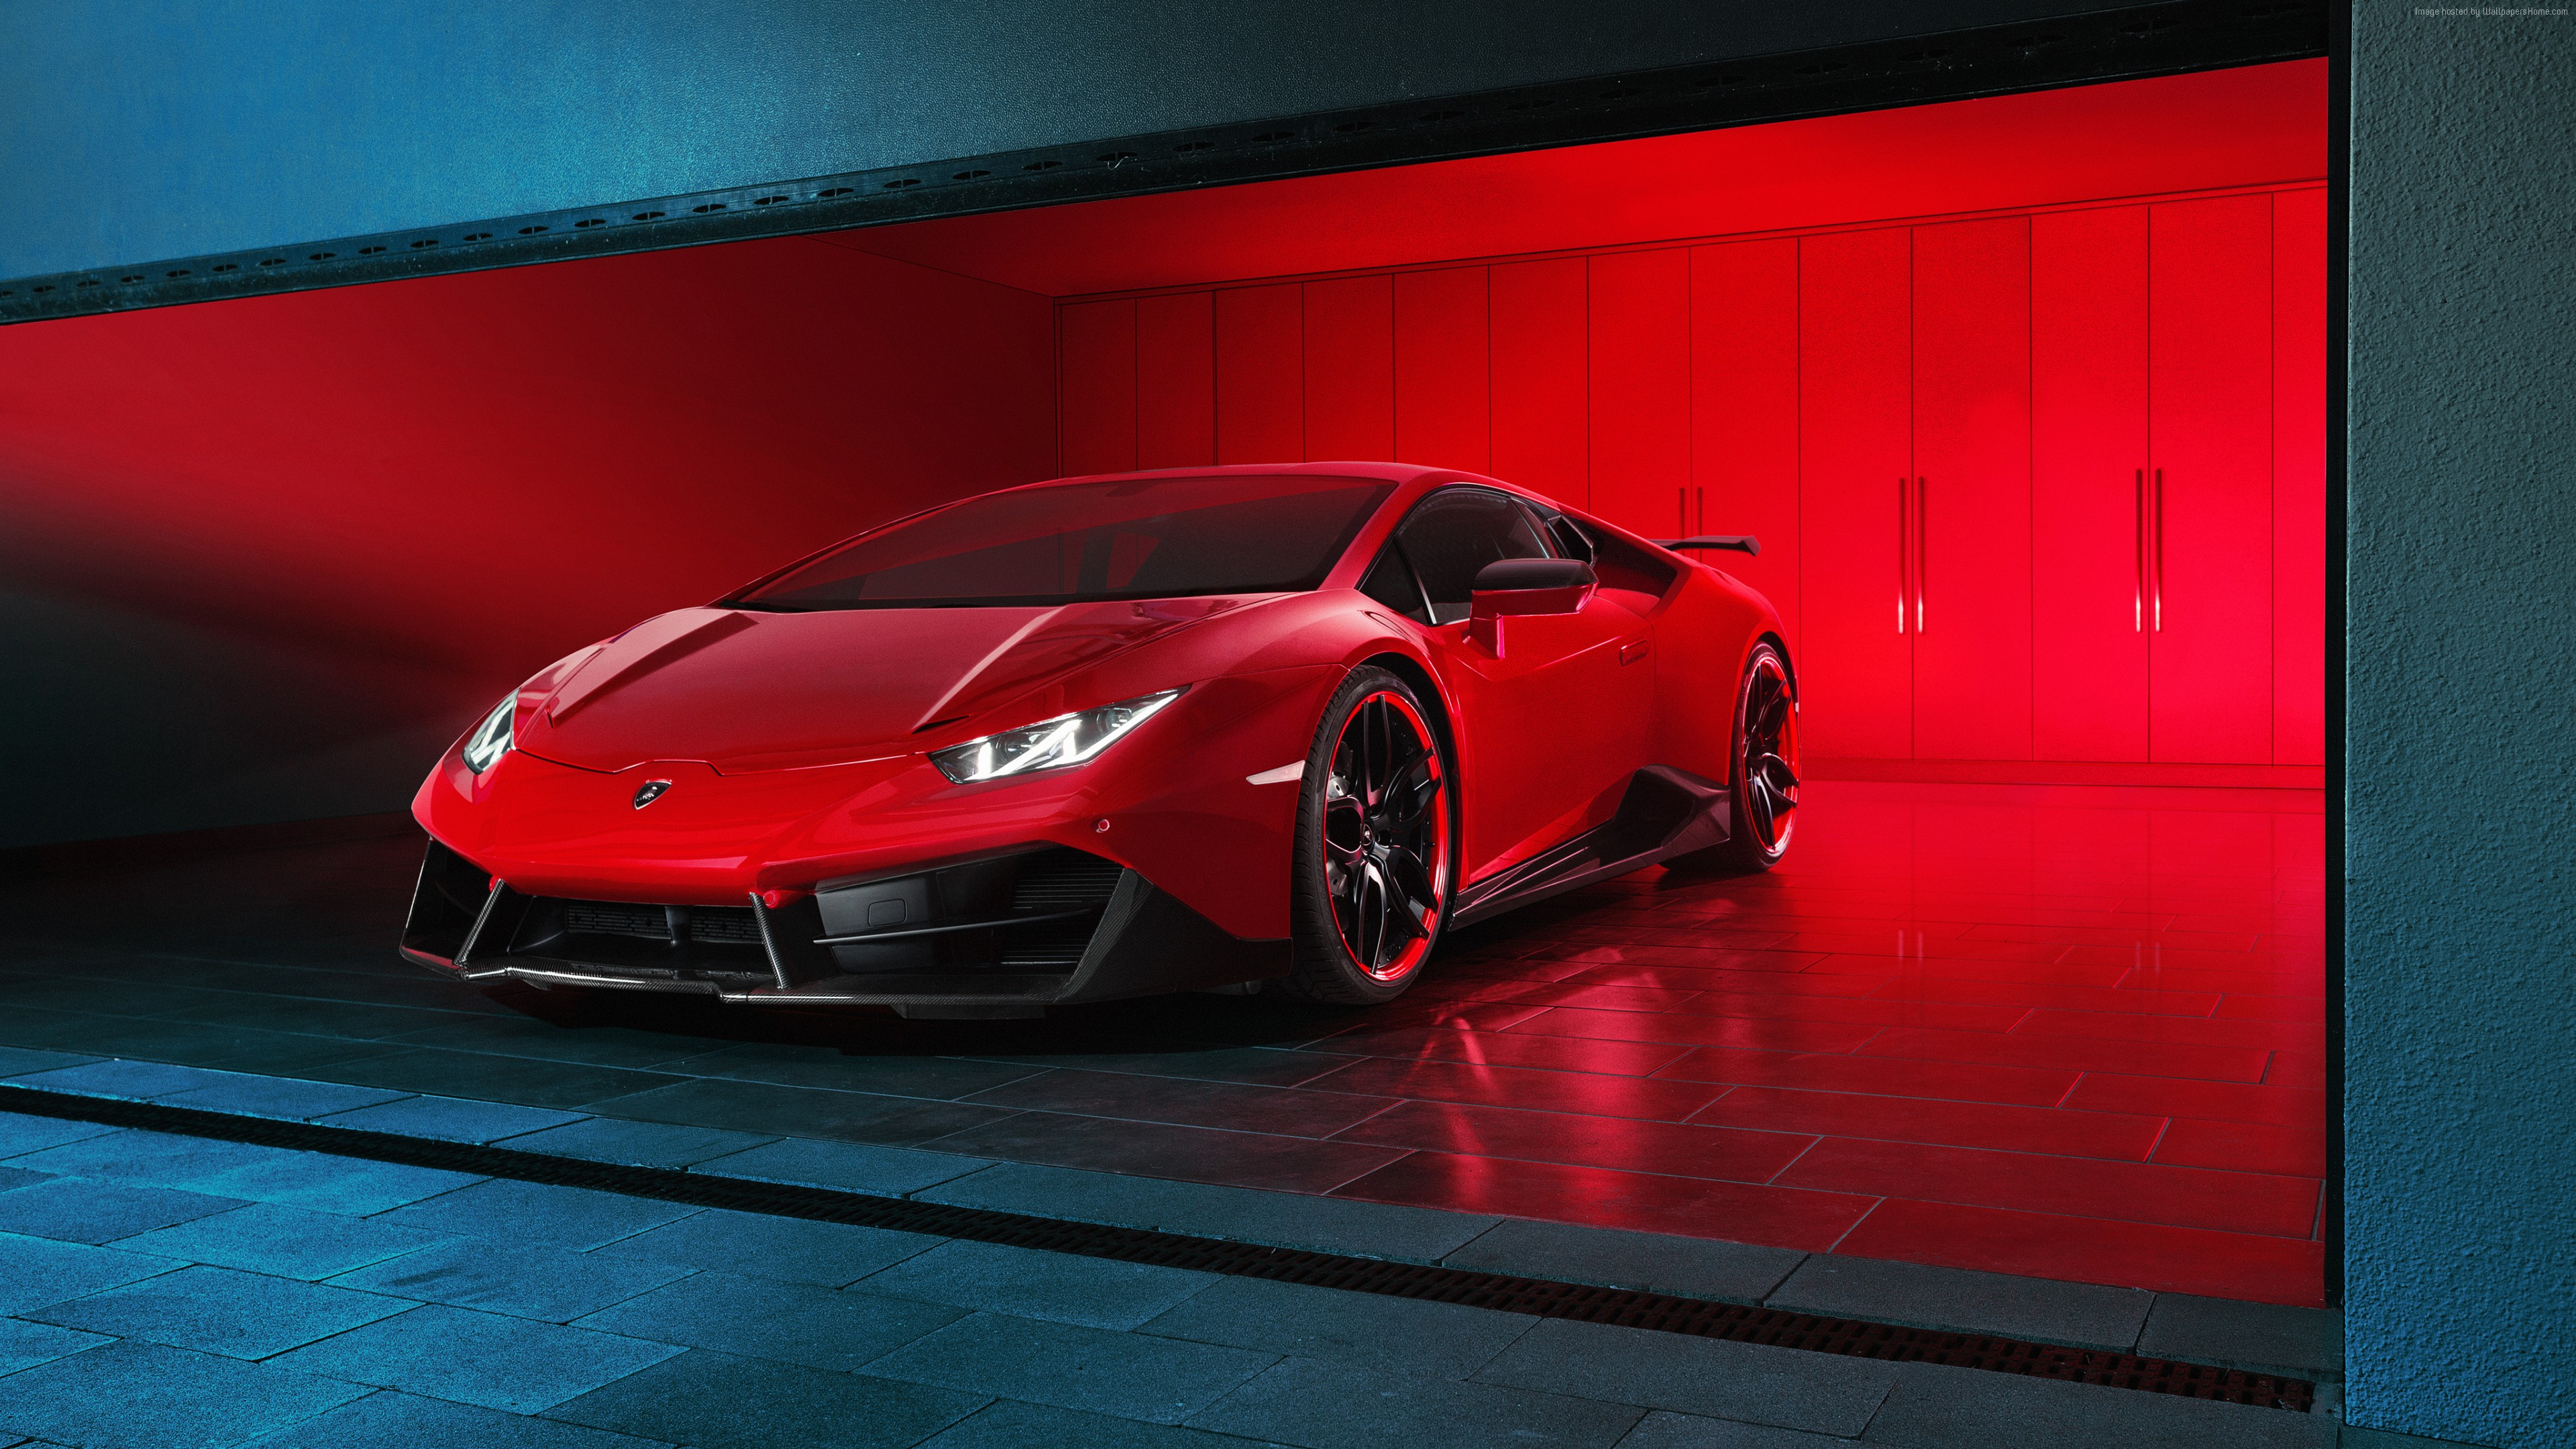 Novitec torado lamborghini huracan hd cars 4k wallpapers - Wallpaper hd 4k car ...